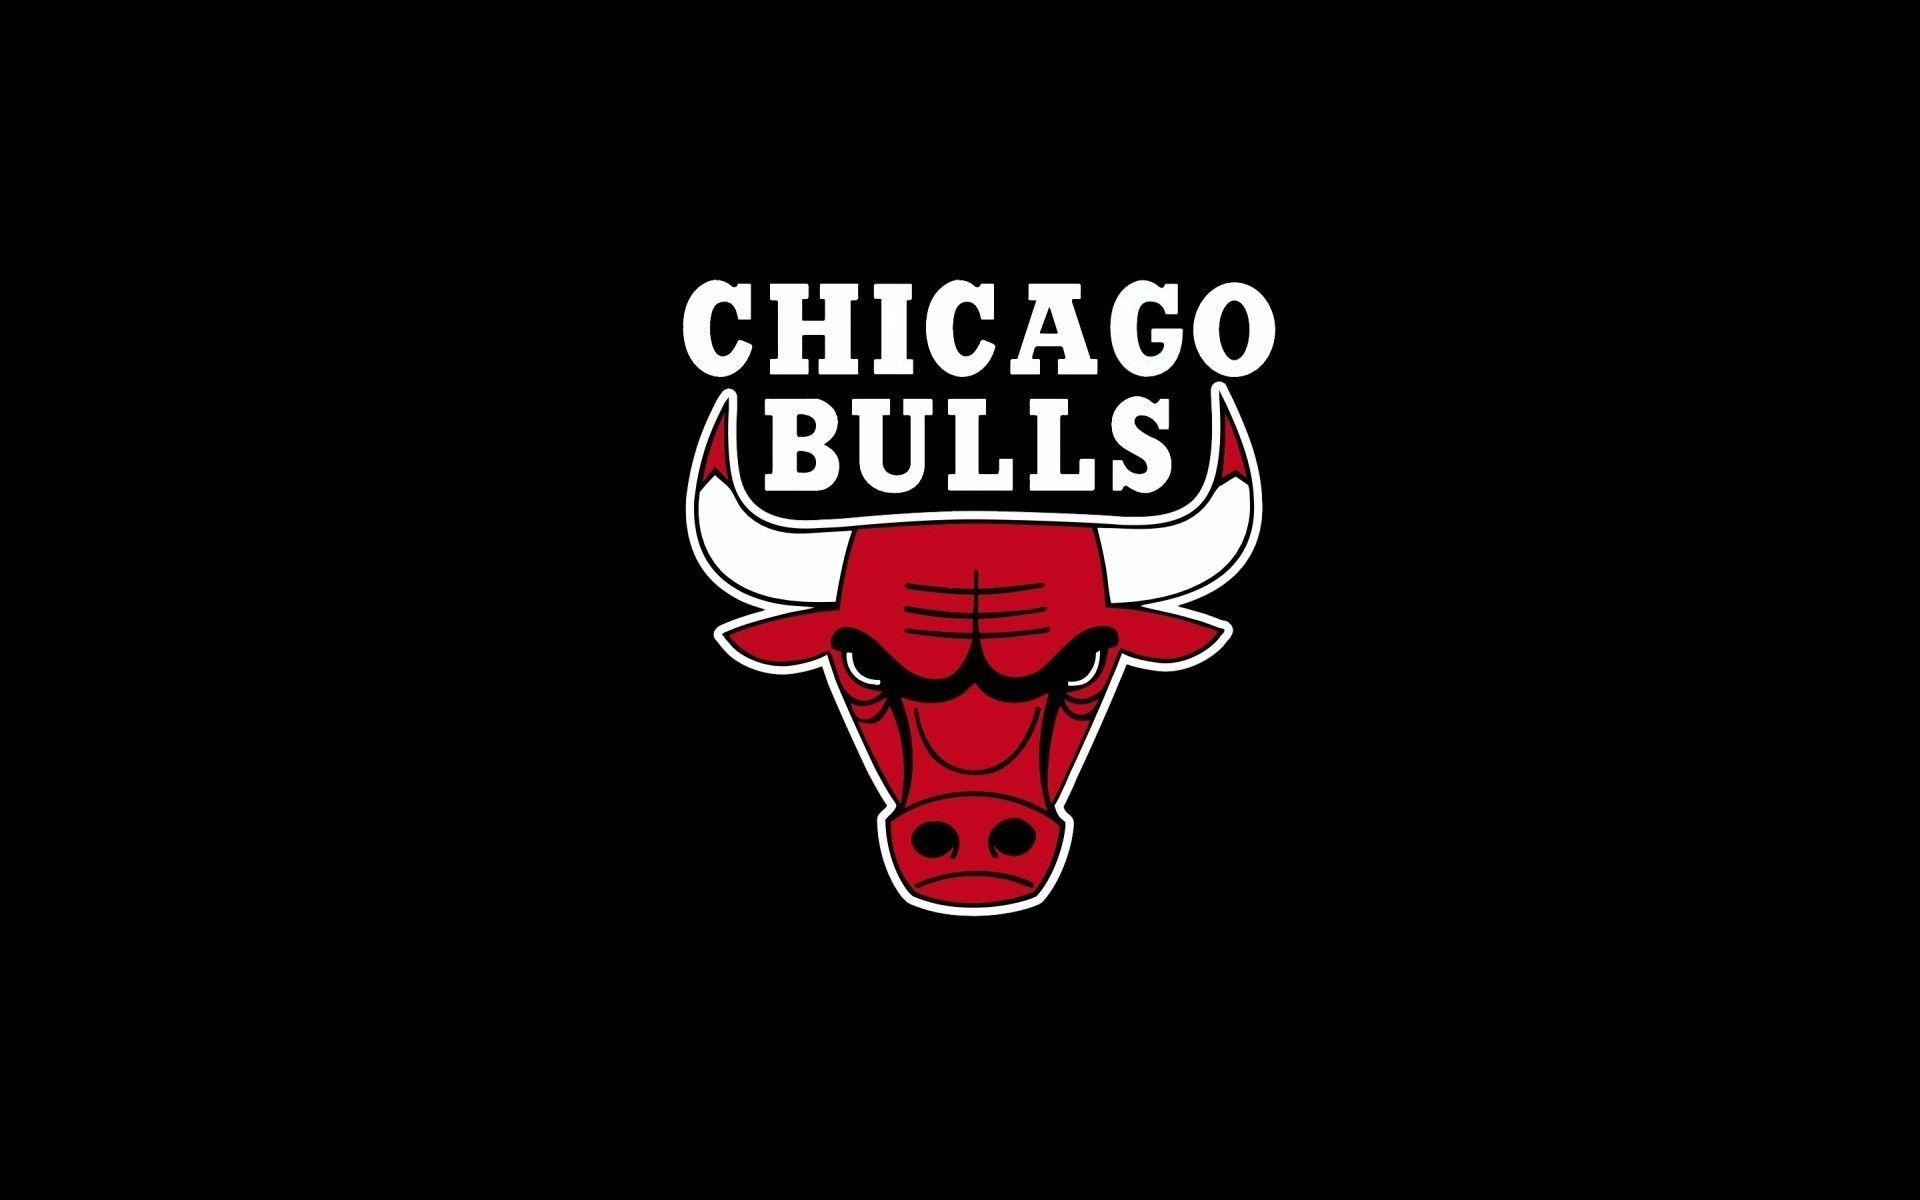 chicago bulls logo wallpapers - wallpaper cave